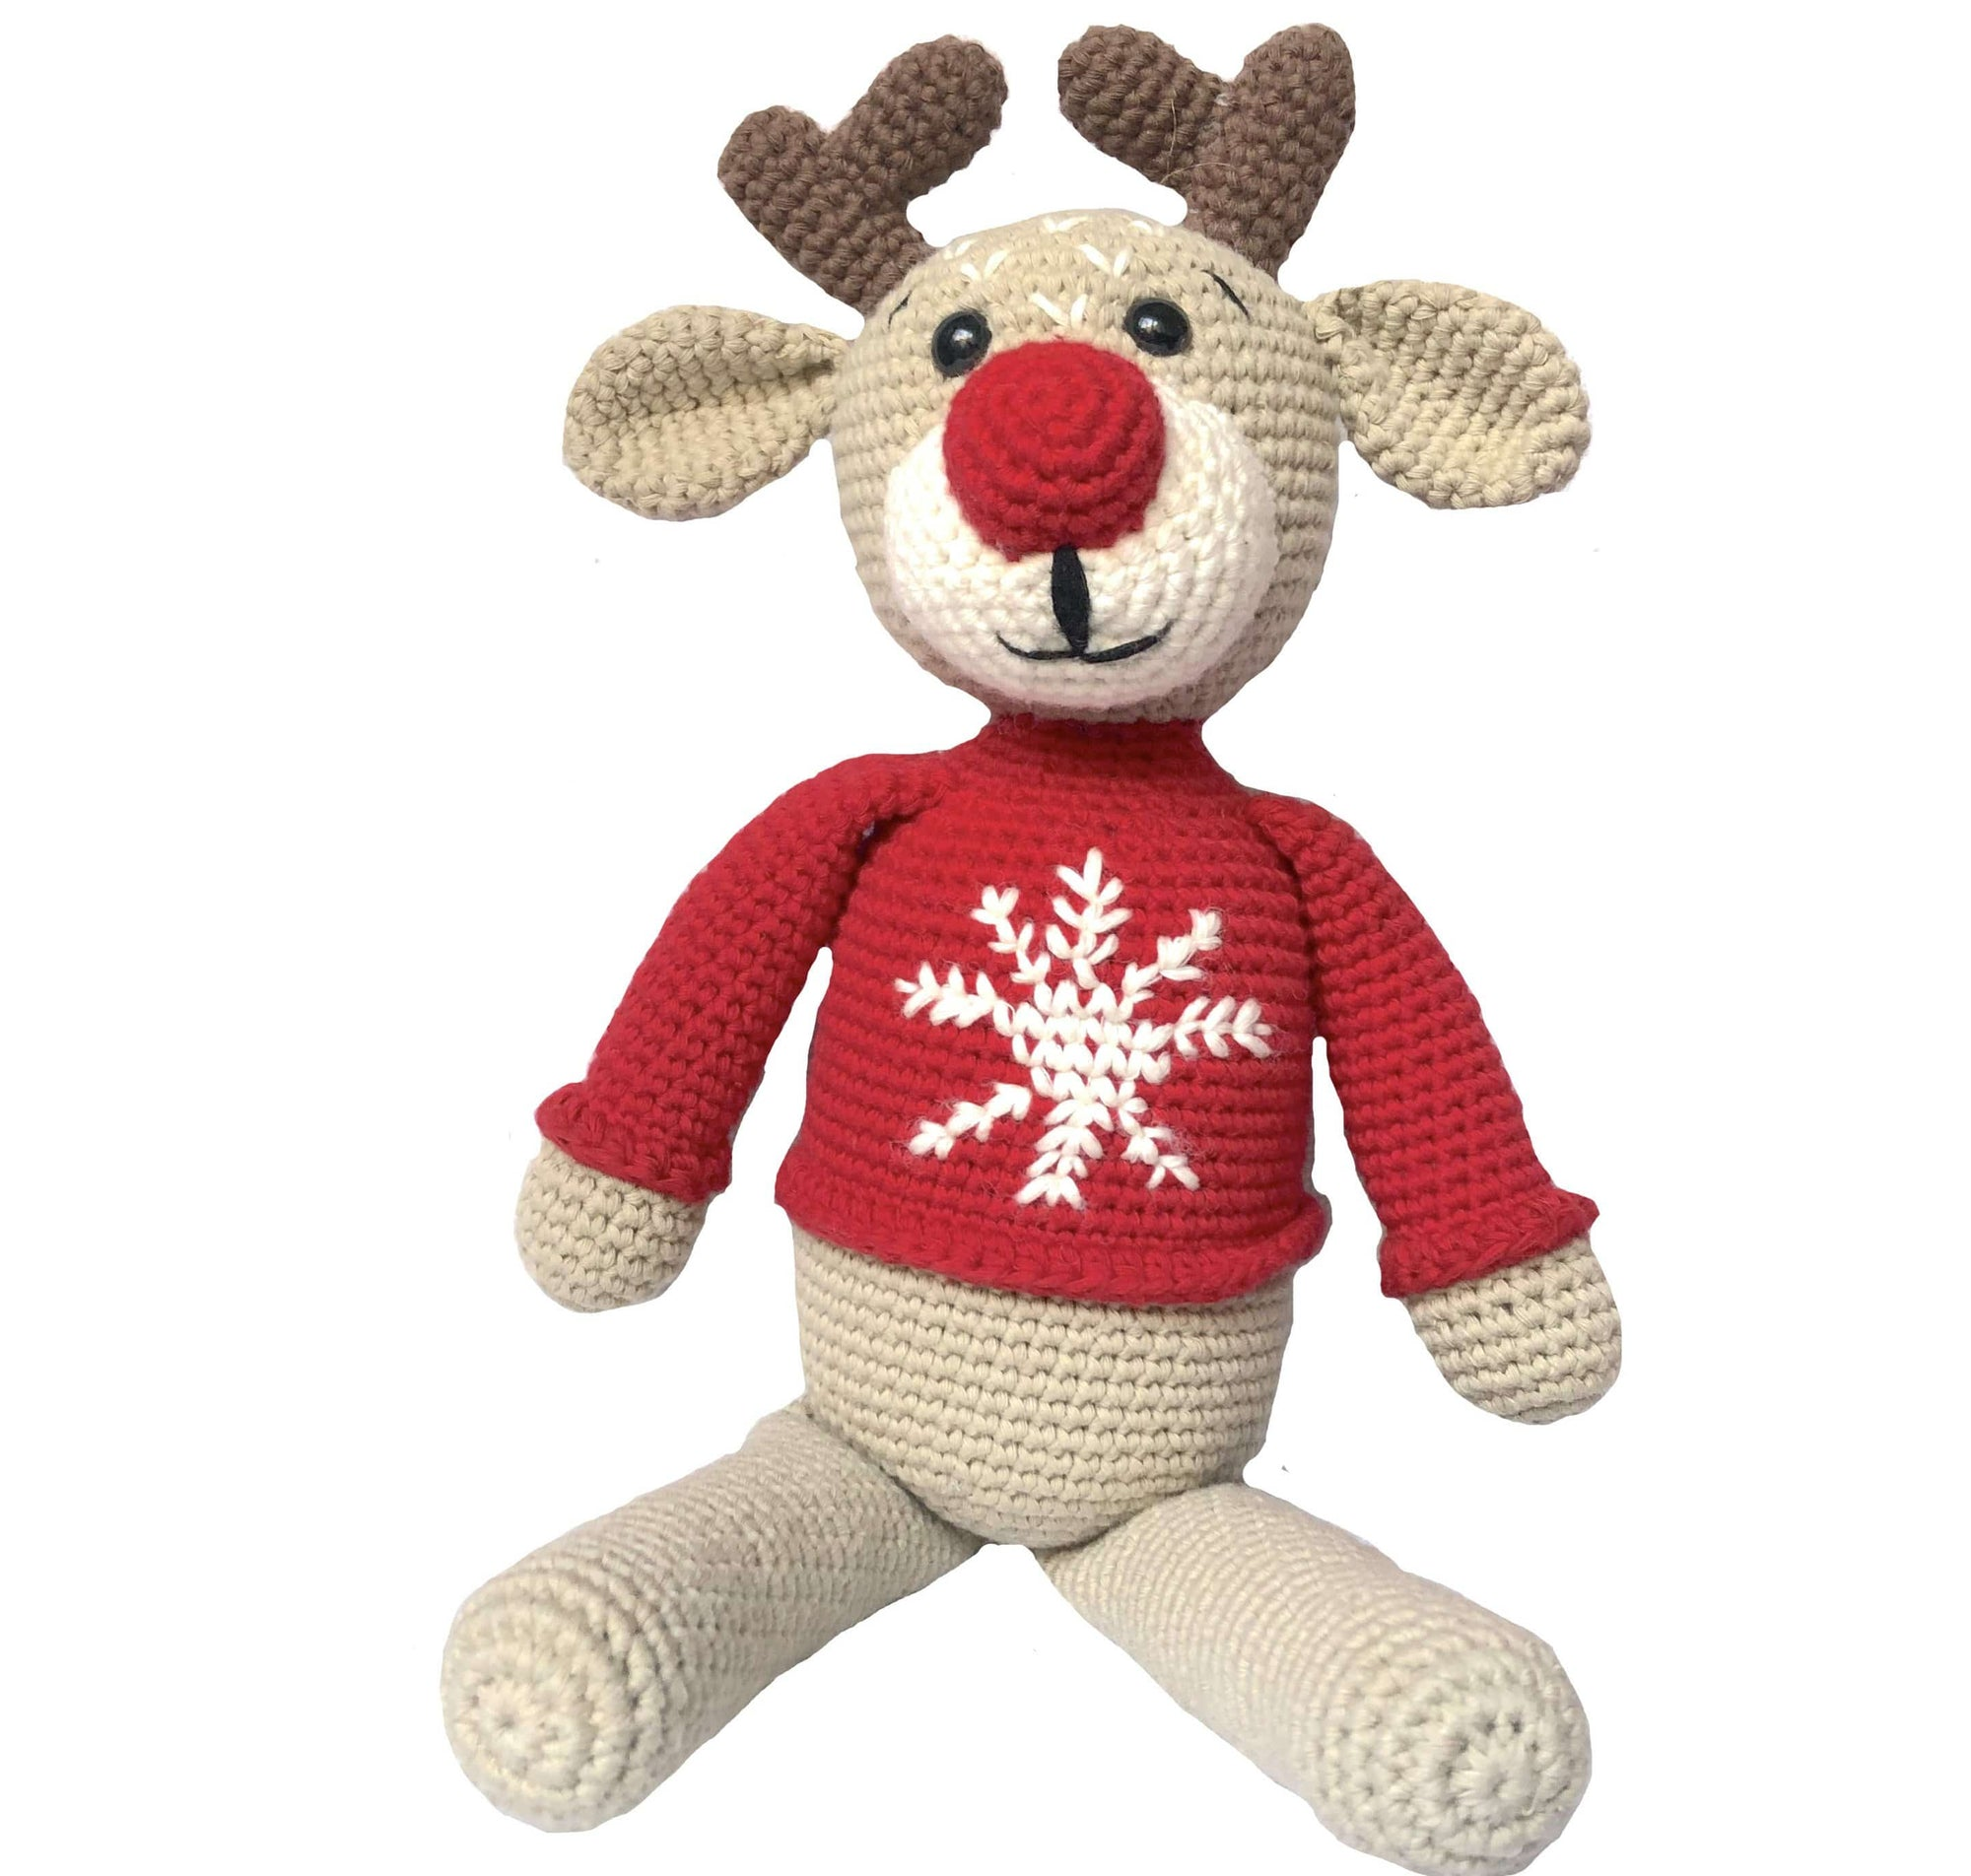 bebemoss.com toy Ruddy the reindeer handmade by moms  gifts with purpose